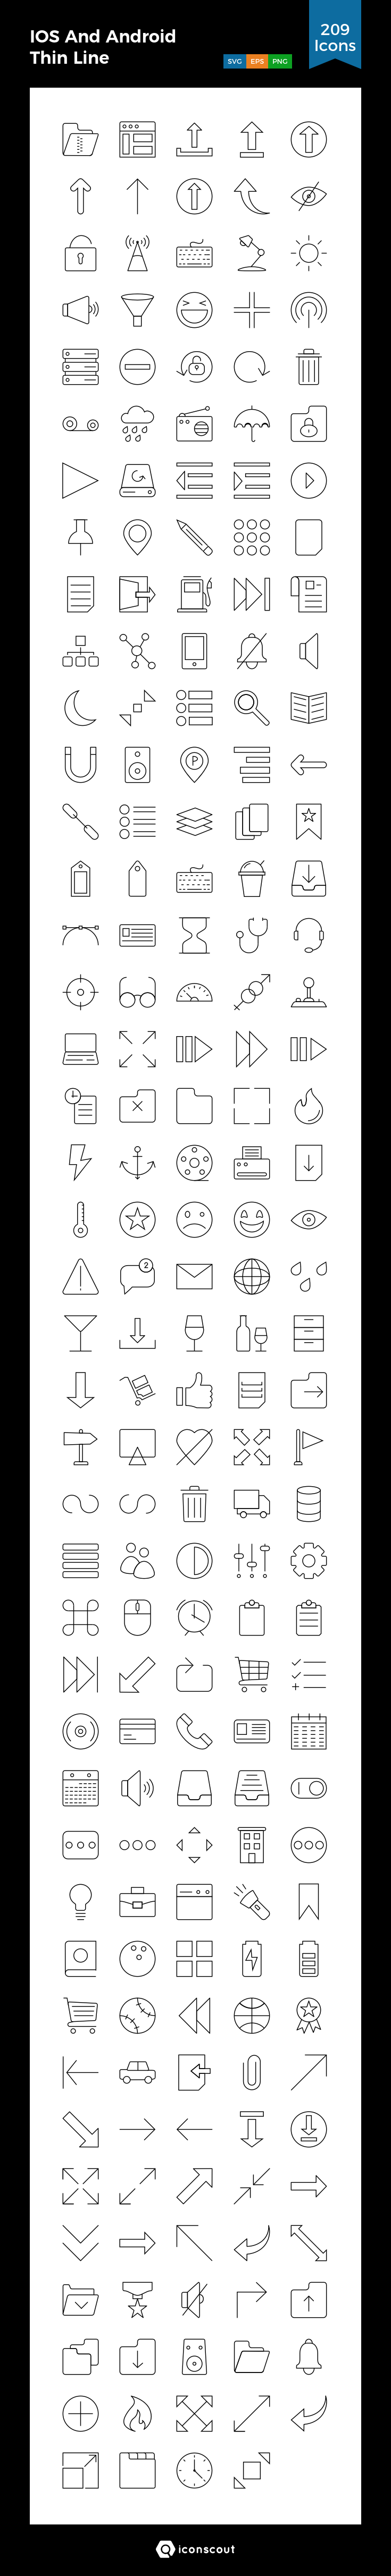 Download Ios And Android Thin Line Icon Pack Available In Svg Png Eps Ai Icon Fonts Icon Pack Line Icon Icon